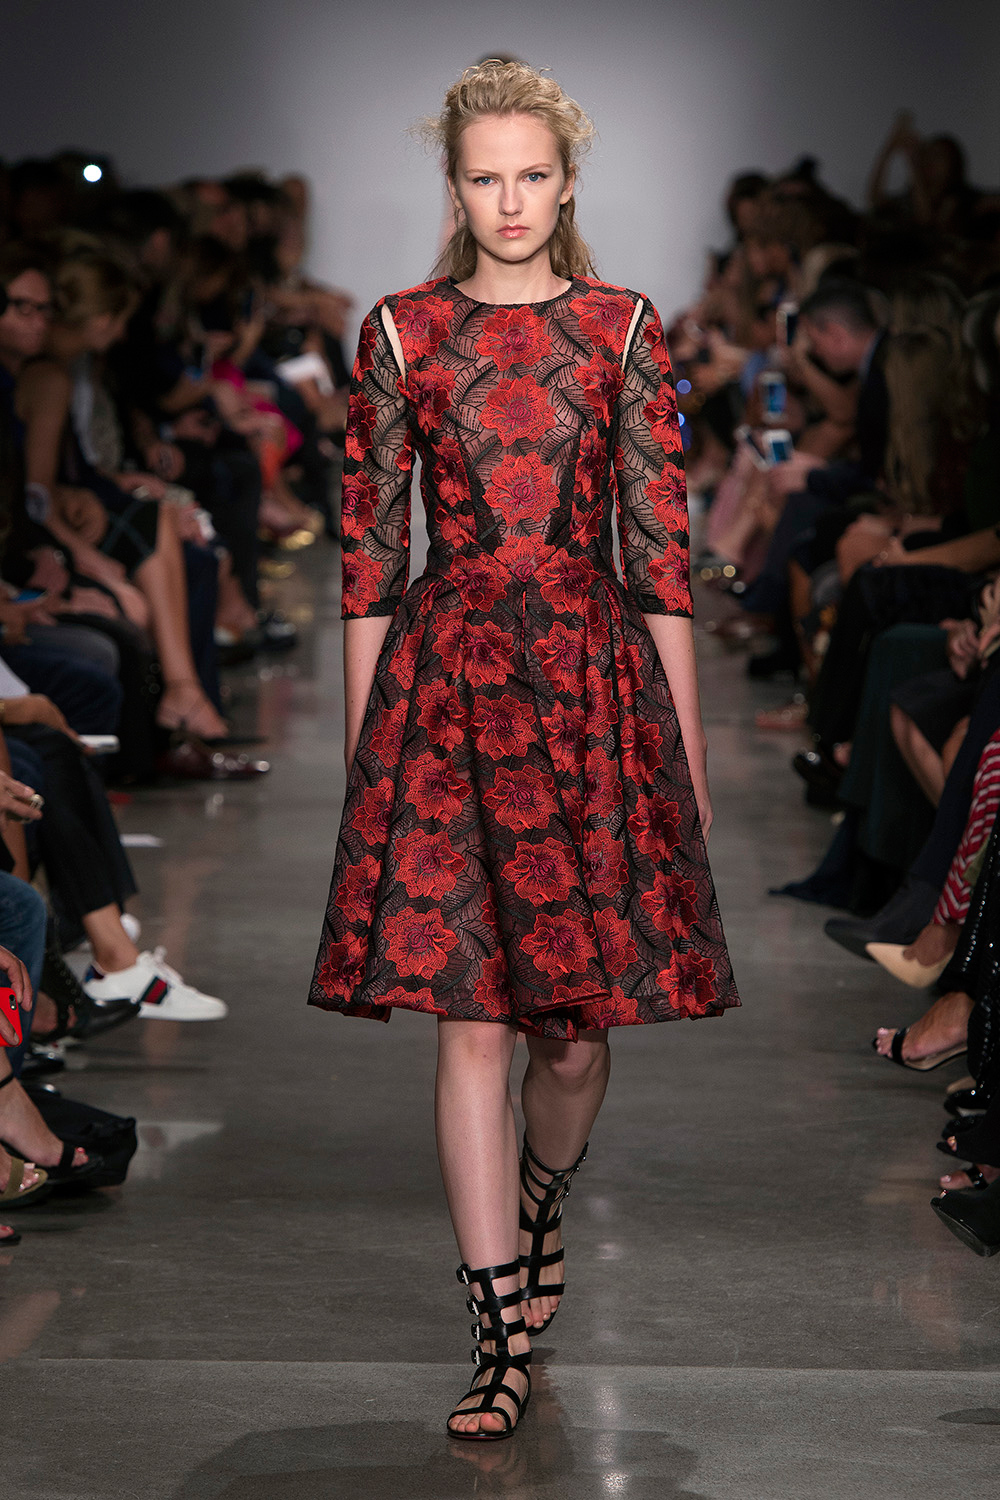 Look 31: Red and Black Floral Dress